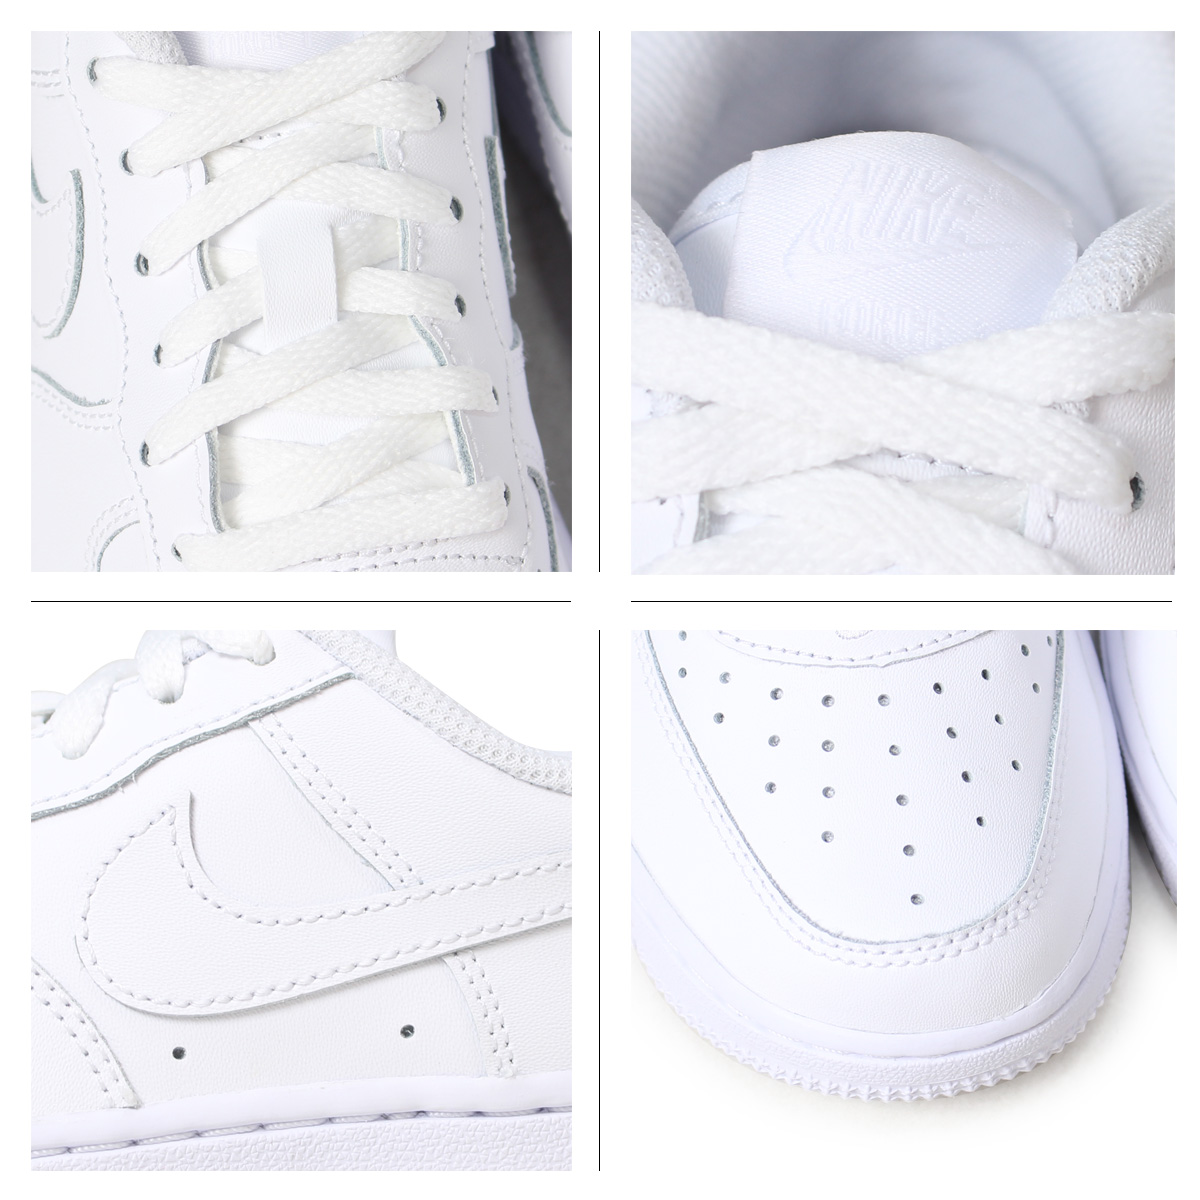 new concept 30aea 50474 NIKE AIR FORCE 1 PS Nike air force 1 kids sneakers 314,193-117 white  load  planned Shinnyu load in reservation product 5 1 containing   184